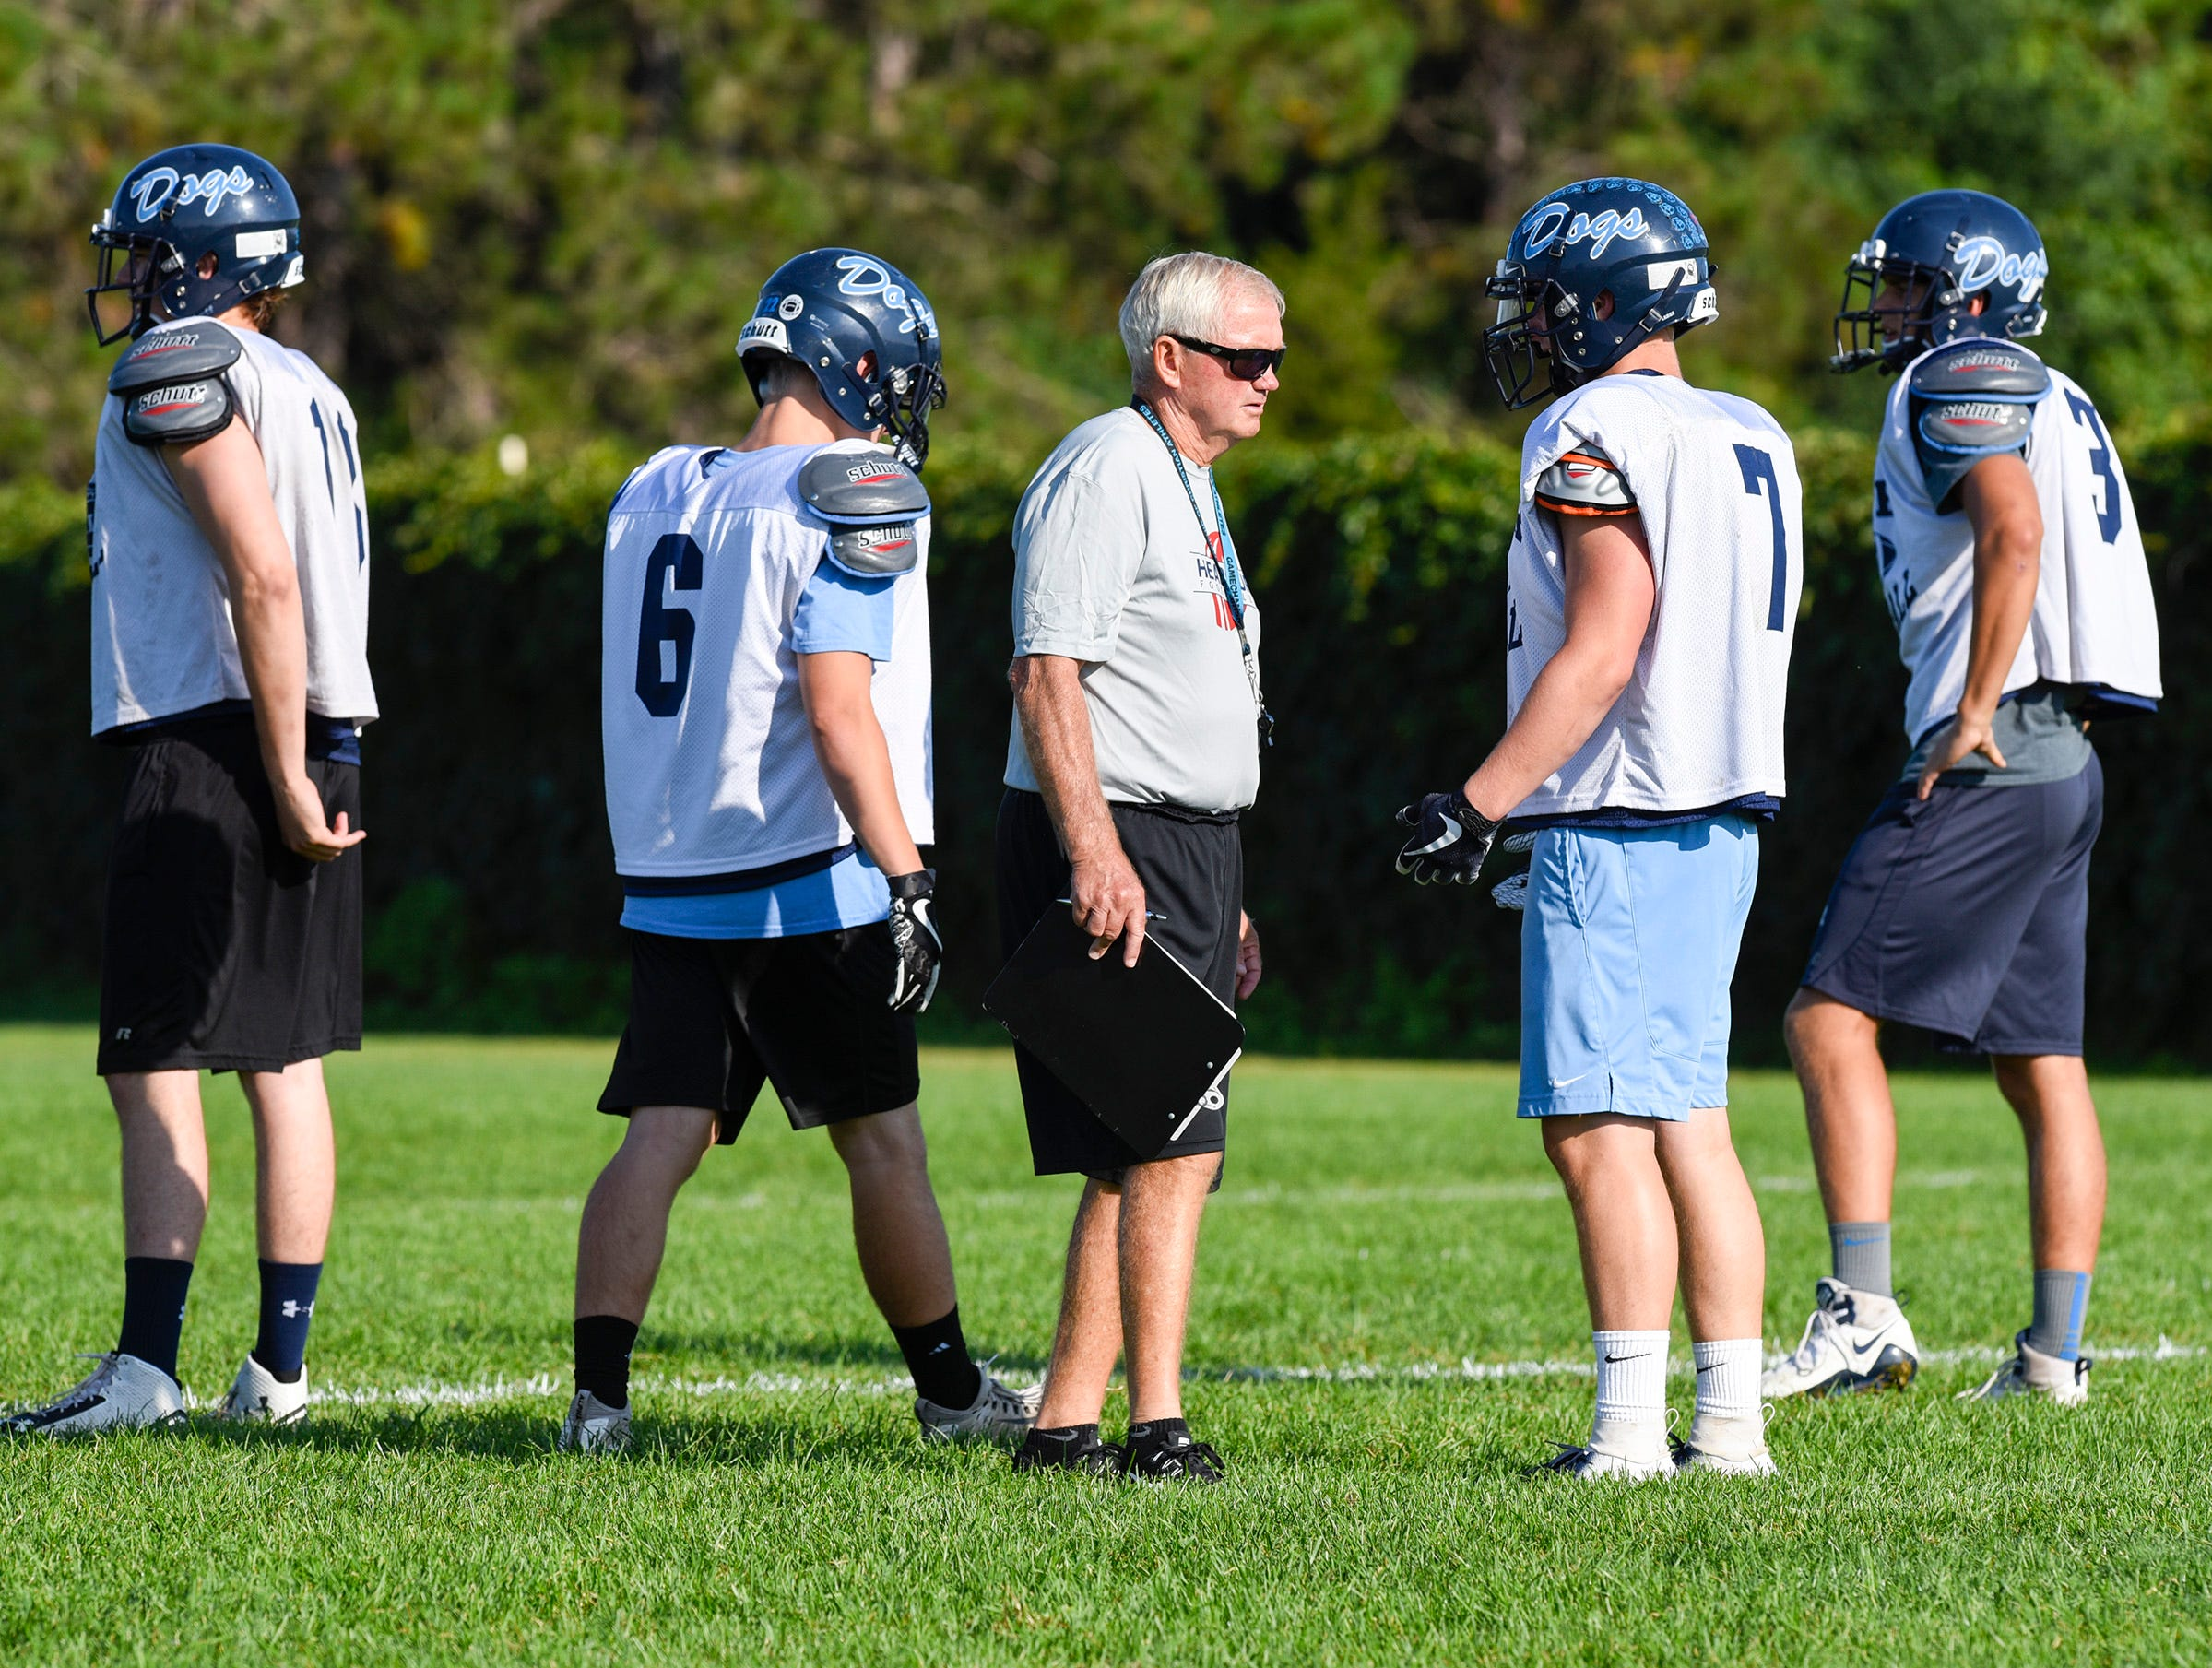 Becker coach Dwight Lundeen talks with players during practice Wednesday, Aug. 22, at the Becker High School.